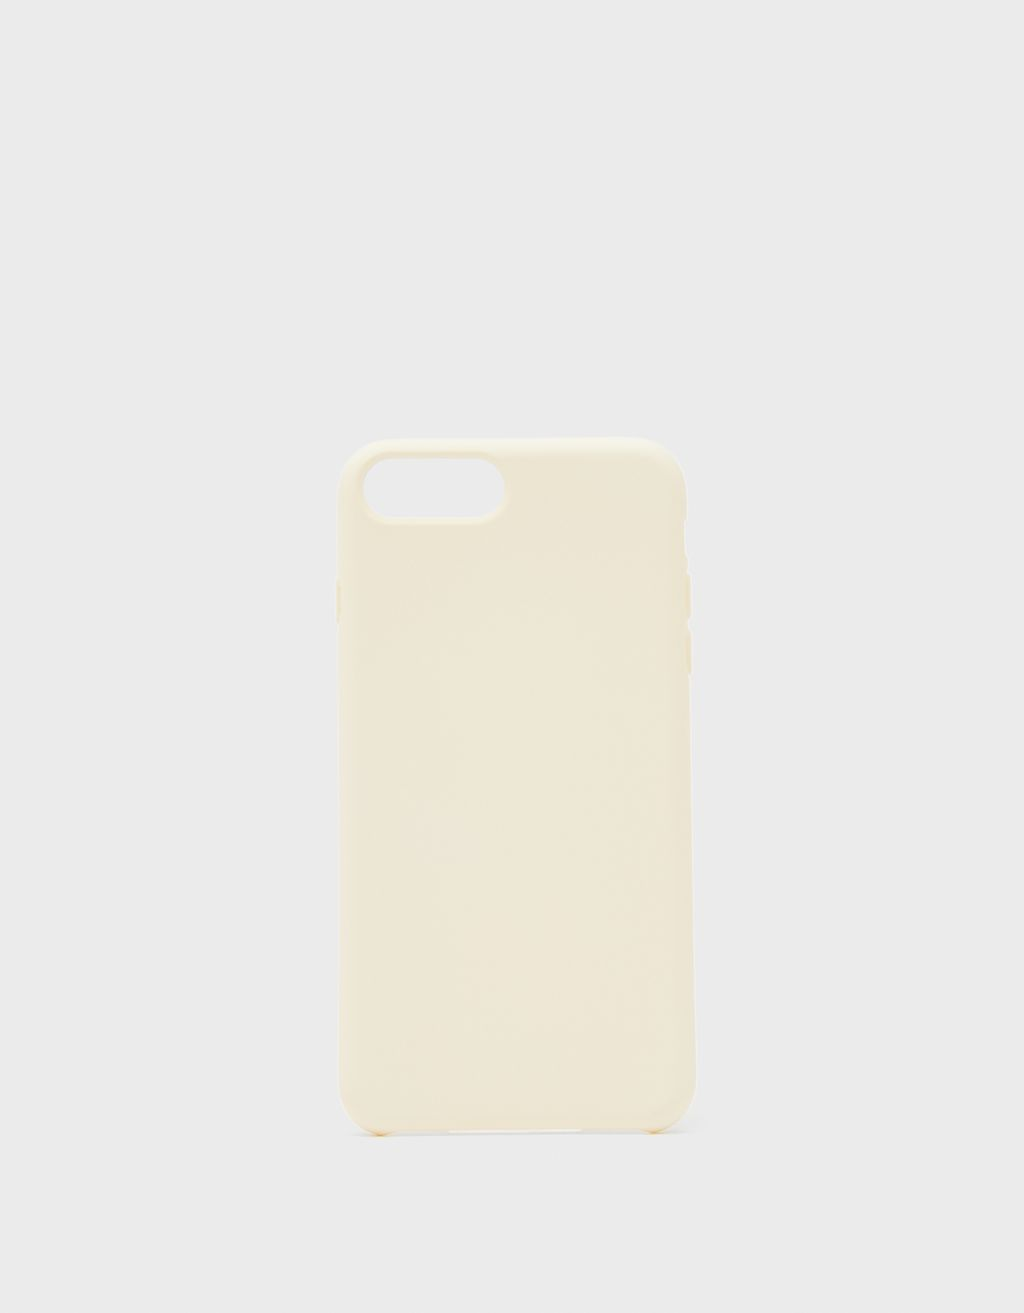 Carcasa monocolor iPhone 6 plus / 7 plus / 8 plus